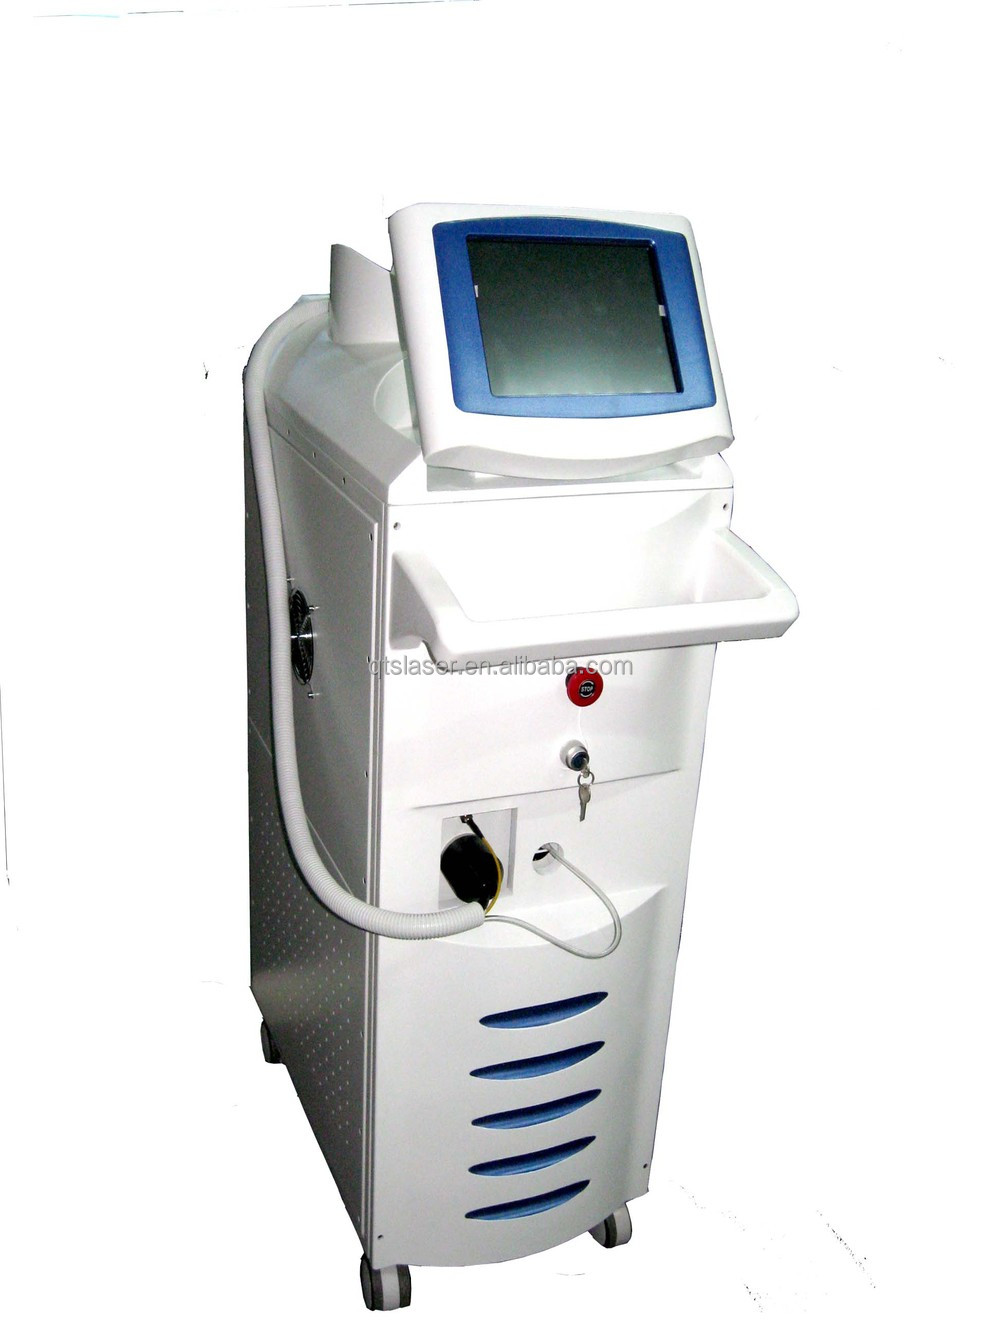 QTS-AL300 laser hair removal,Laser 755 Alex Alexandrite Hair Removal Machine,laser therapy device,candela laser machine